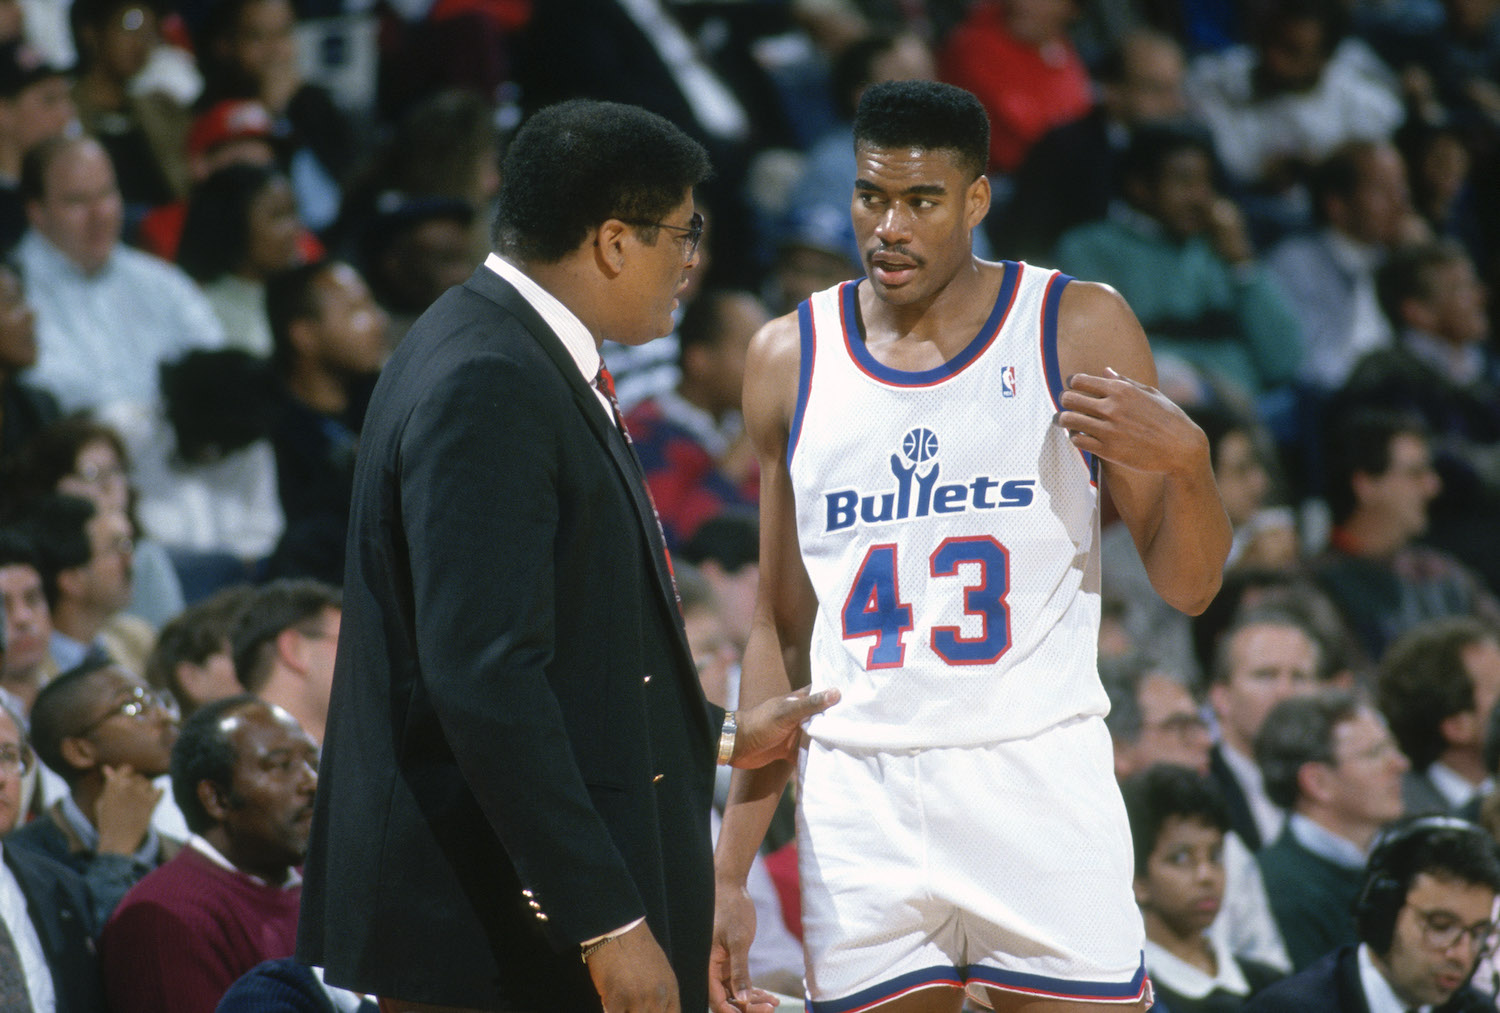 What Happened to the No. 1 Overall Pick from the 1989 NBA Draft 'Never Nervous' Pervis Ellison?